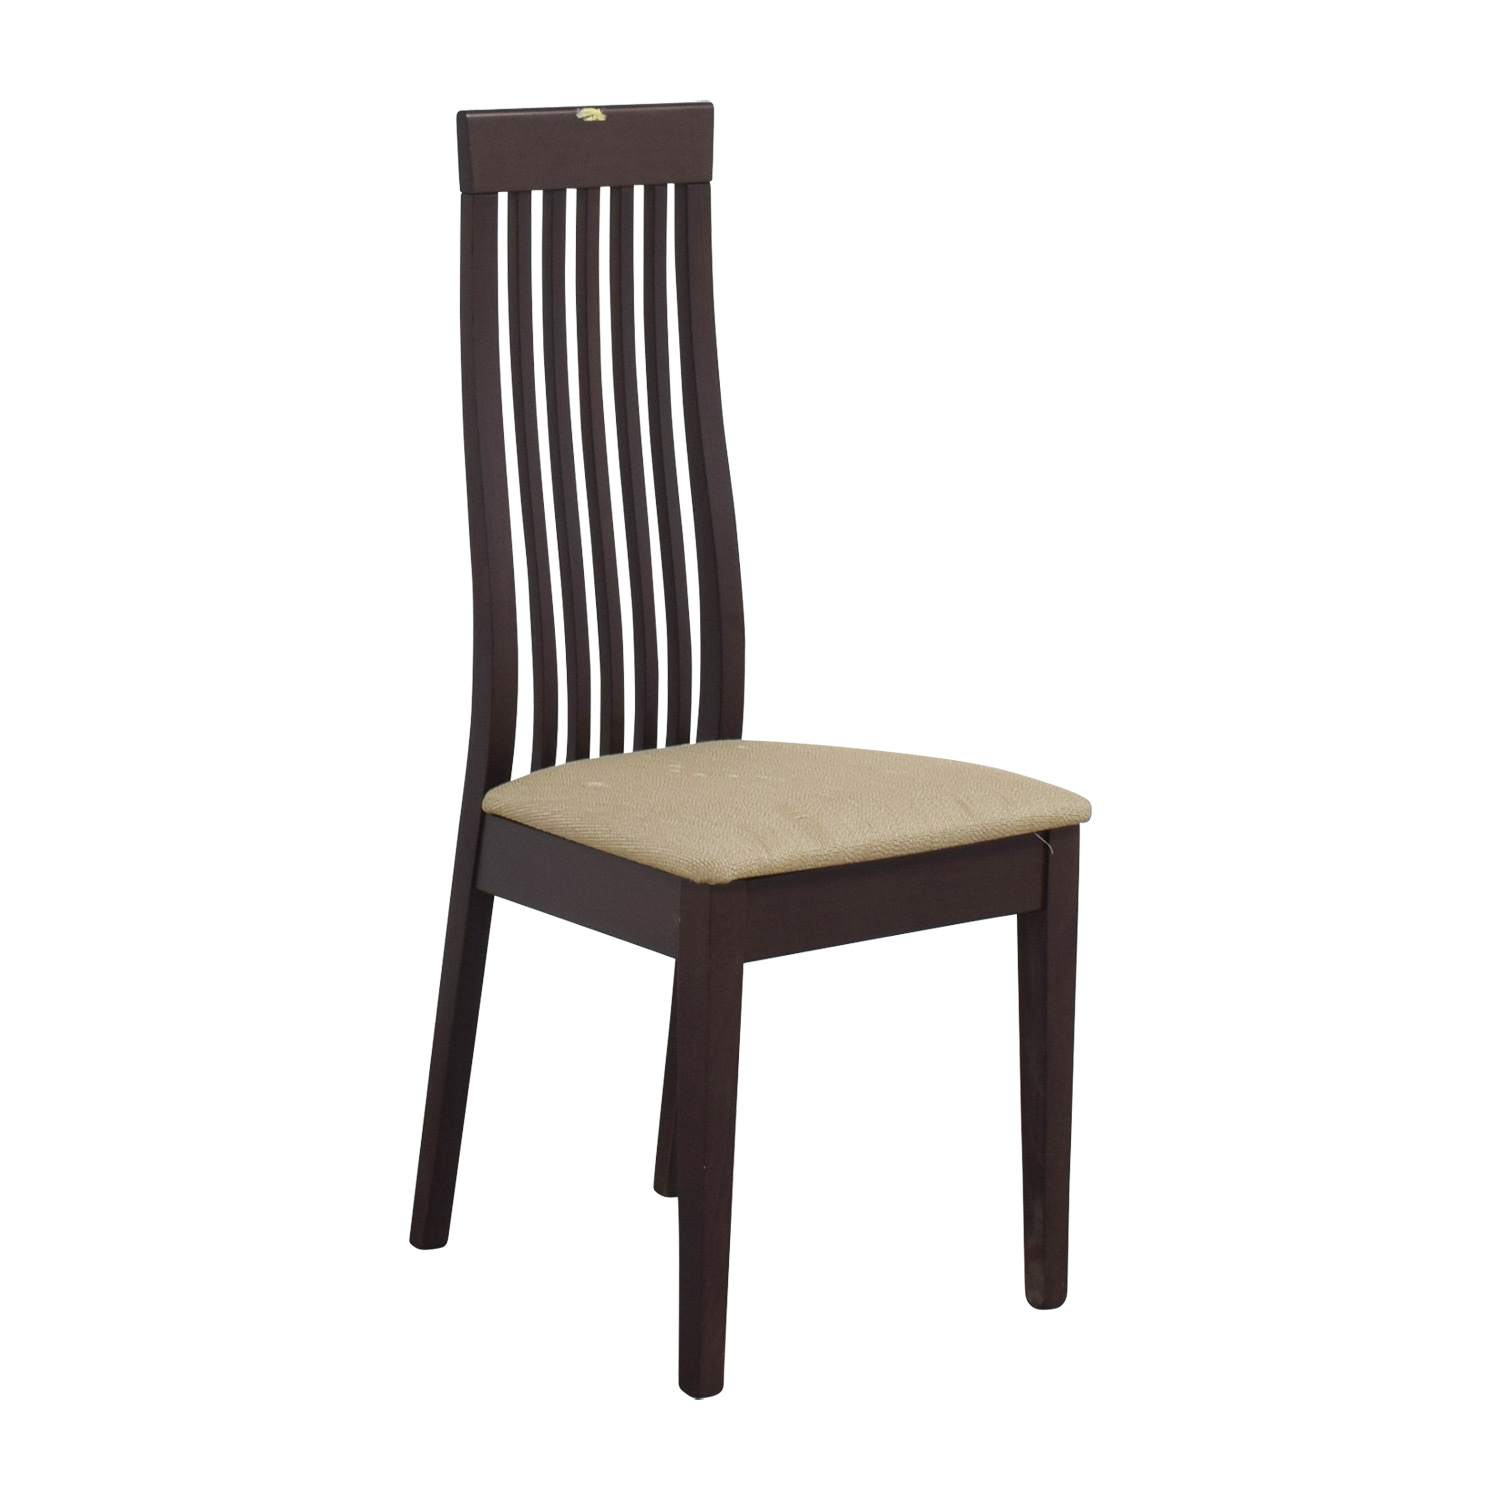 wooden slat chairs upholstery wingback chair 90 off wood vertical back with tan cushioned